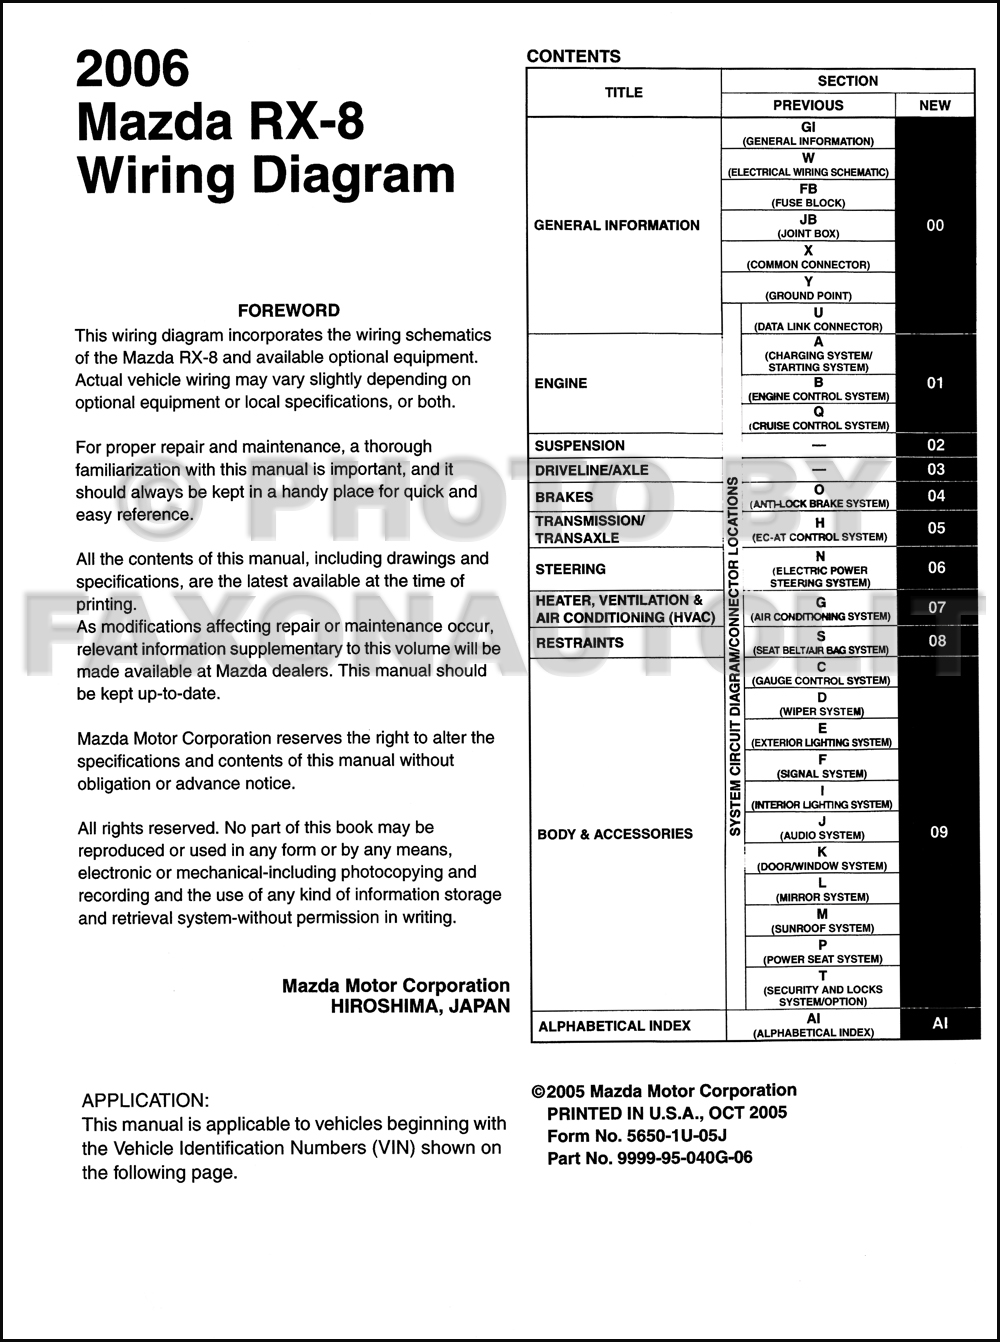 2006 mazda rx 8 wiring diagram manual original rx8. Black Bedroom Furniture Sets. Home Design Ideas